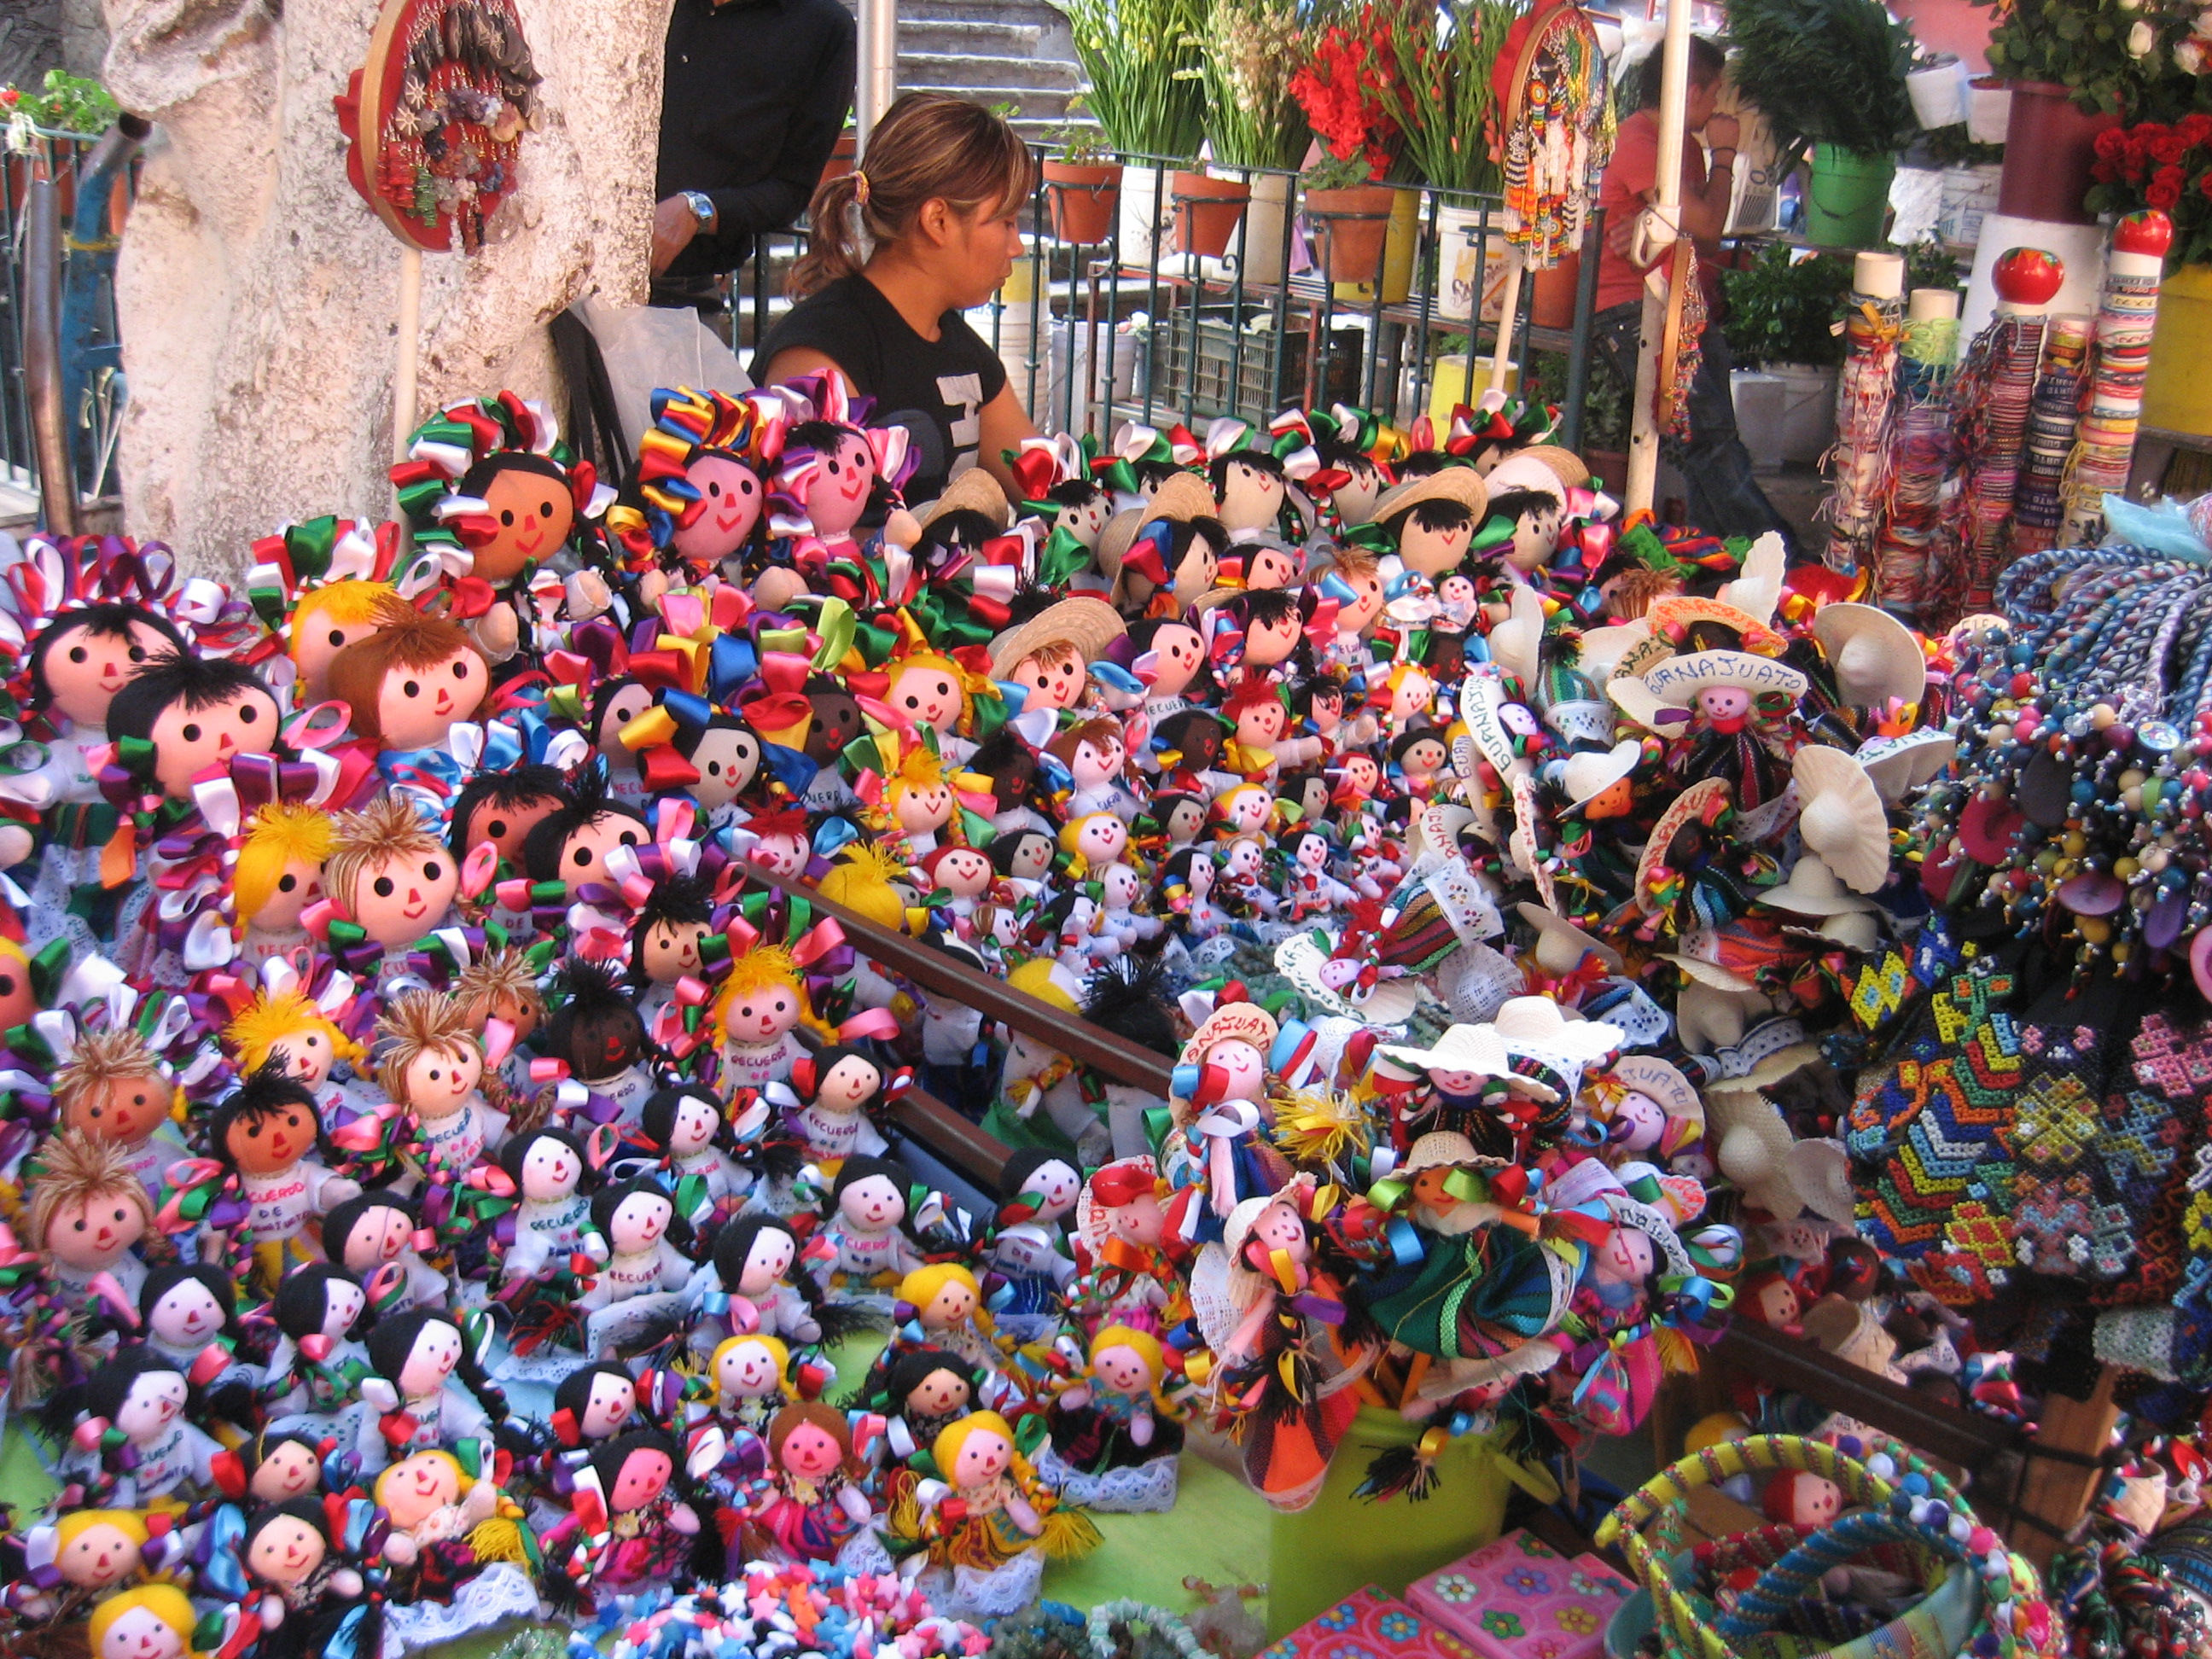 Children selling dolls at a stand in Monterrey